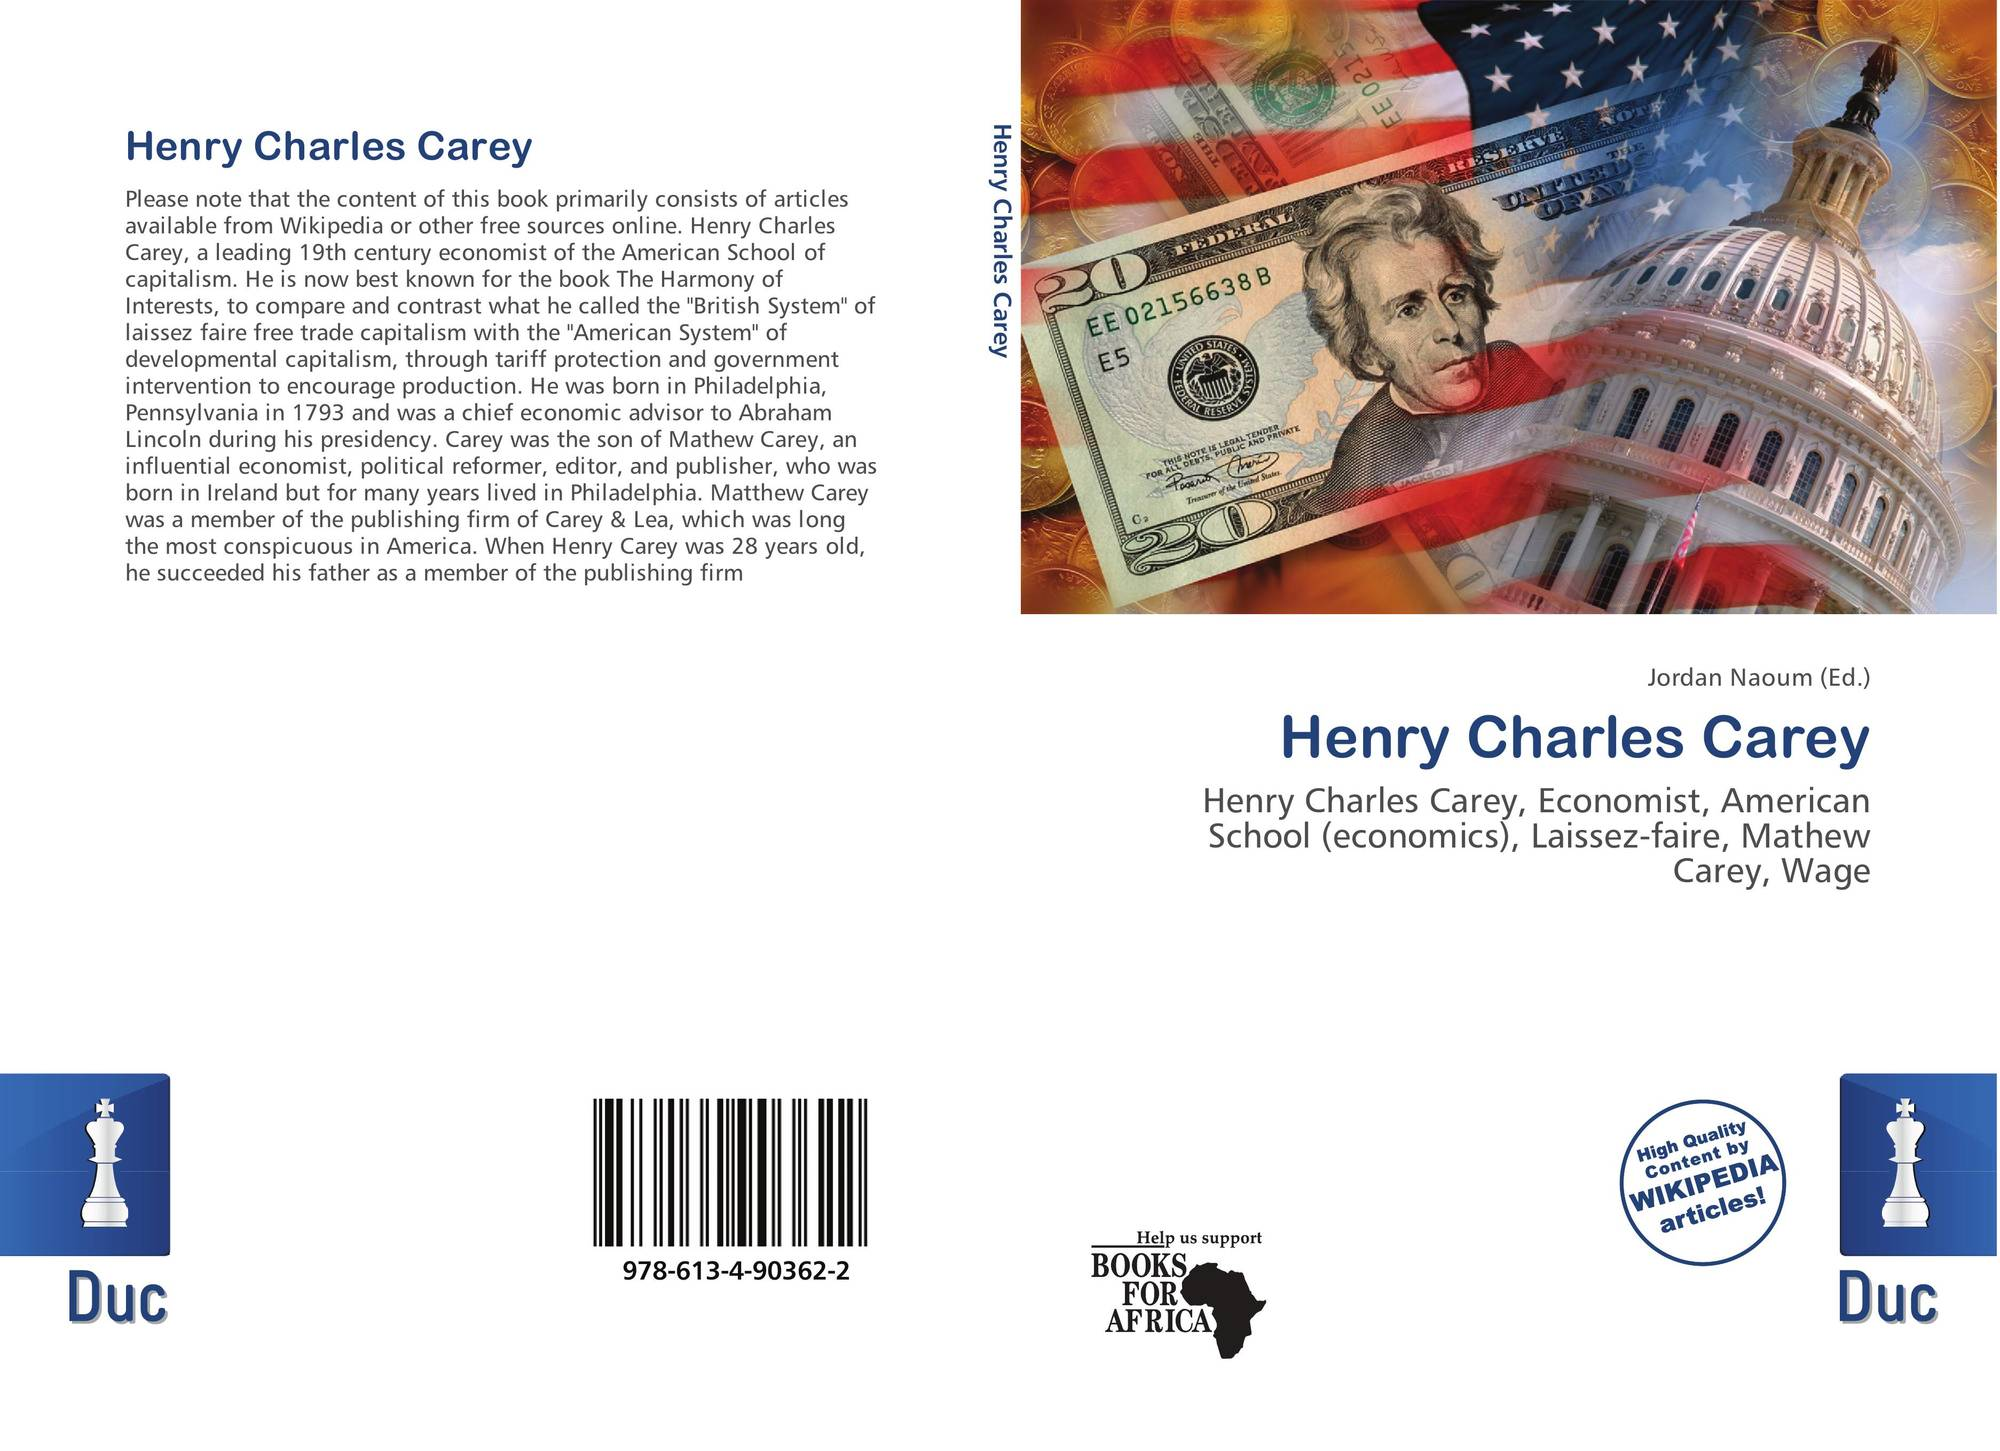 mathew carey essays on political economy Henry carey was the eldest son of mathew carey essay on the rate of wages, which the and few more so than henry carey, made political economy the.